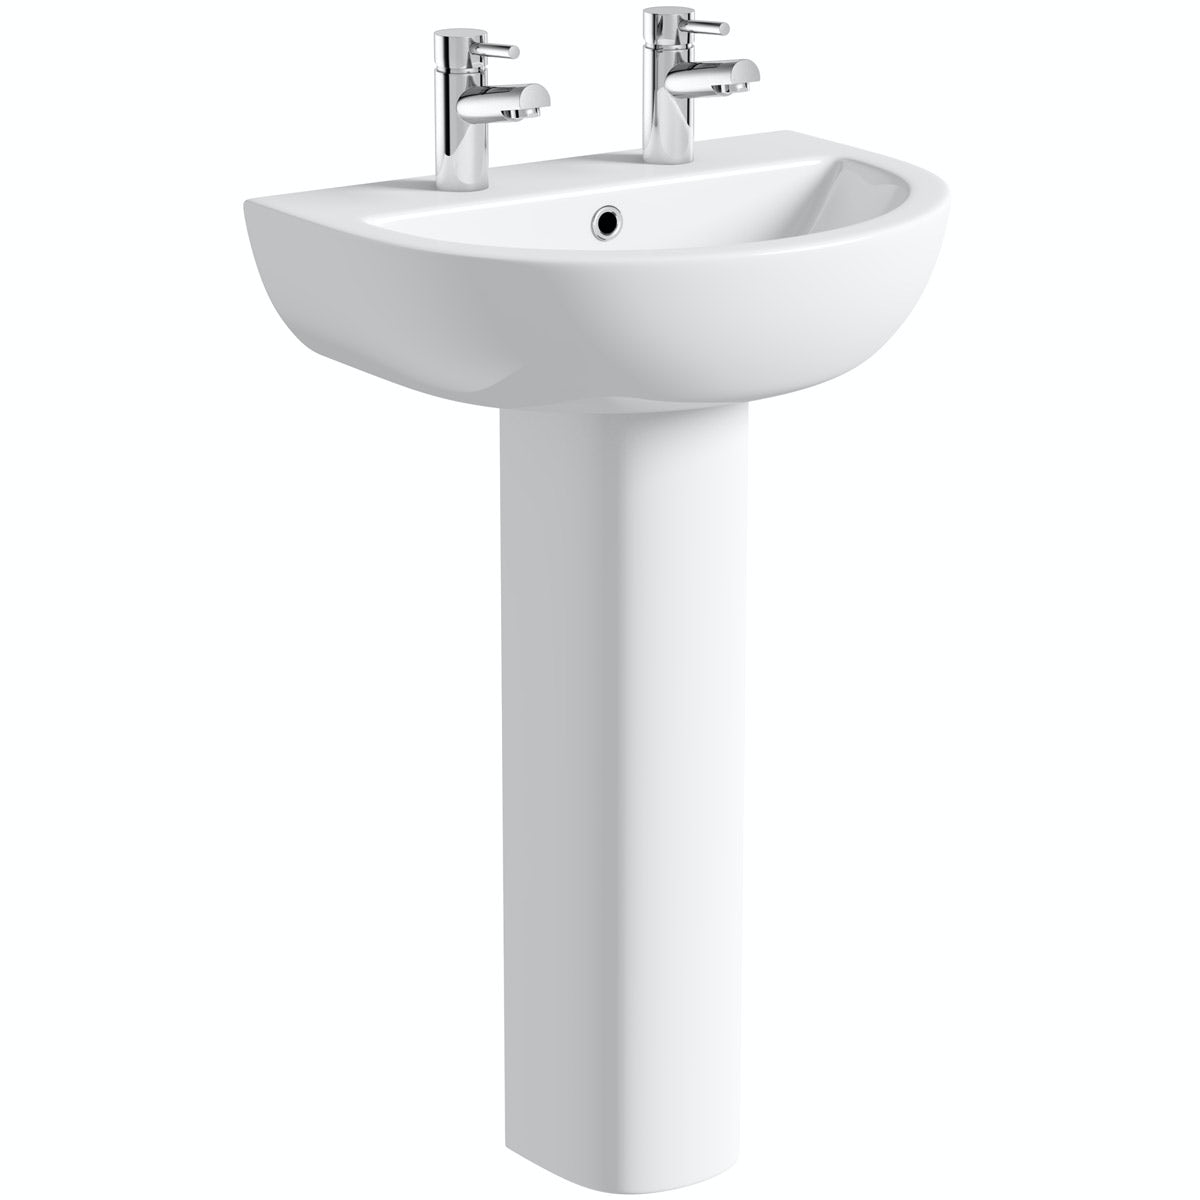 Orchard Elena 2 tap hole full pedestal basin